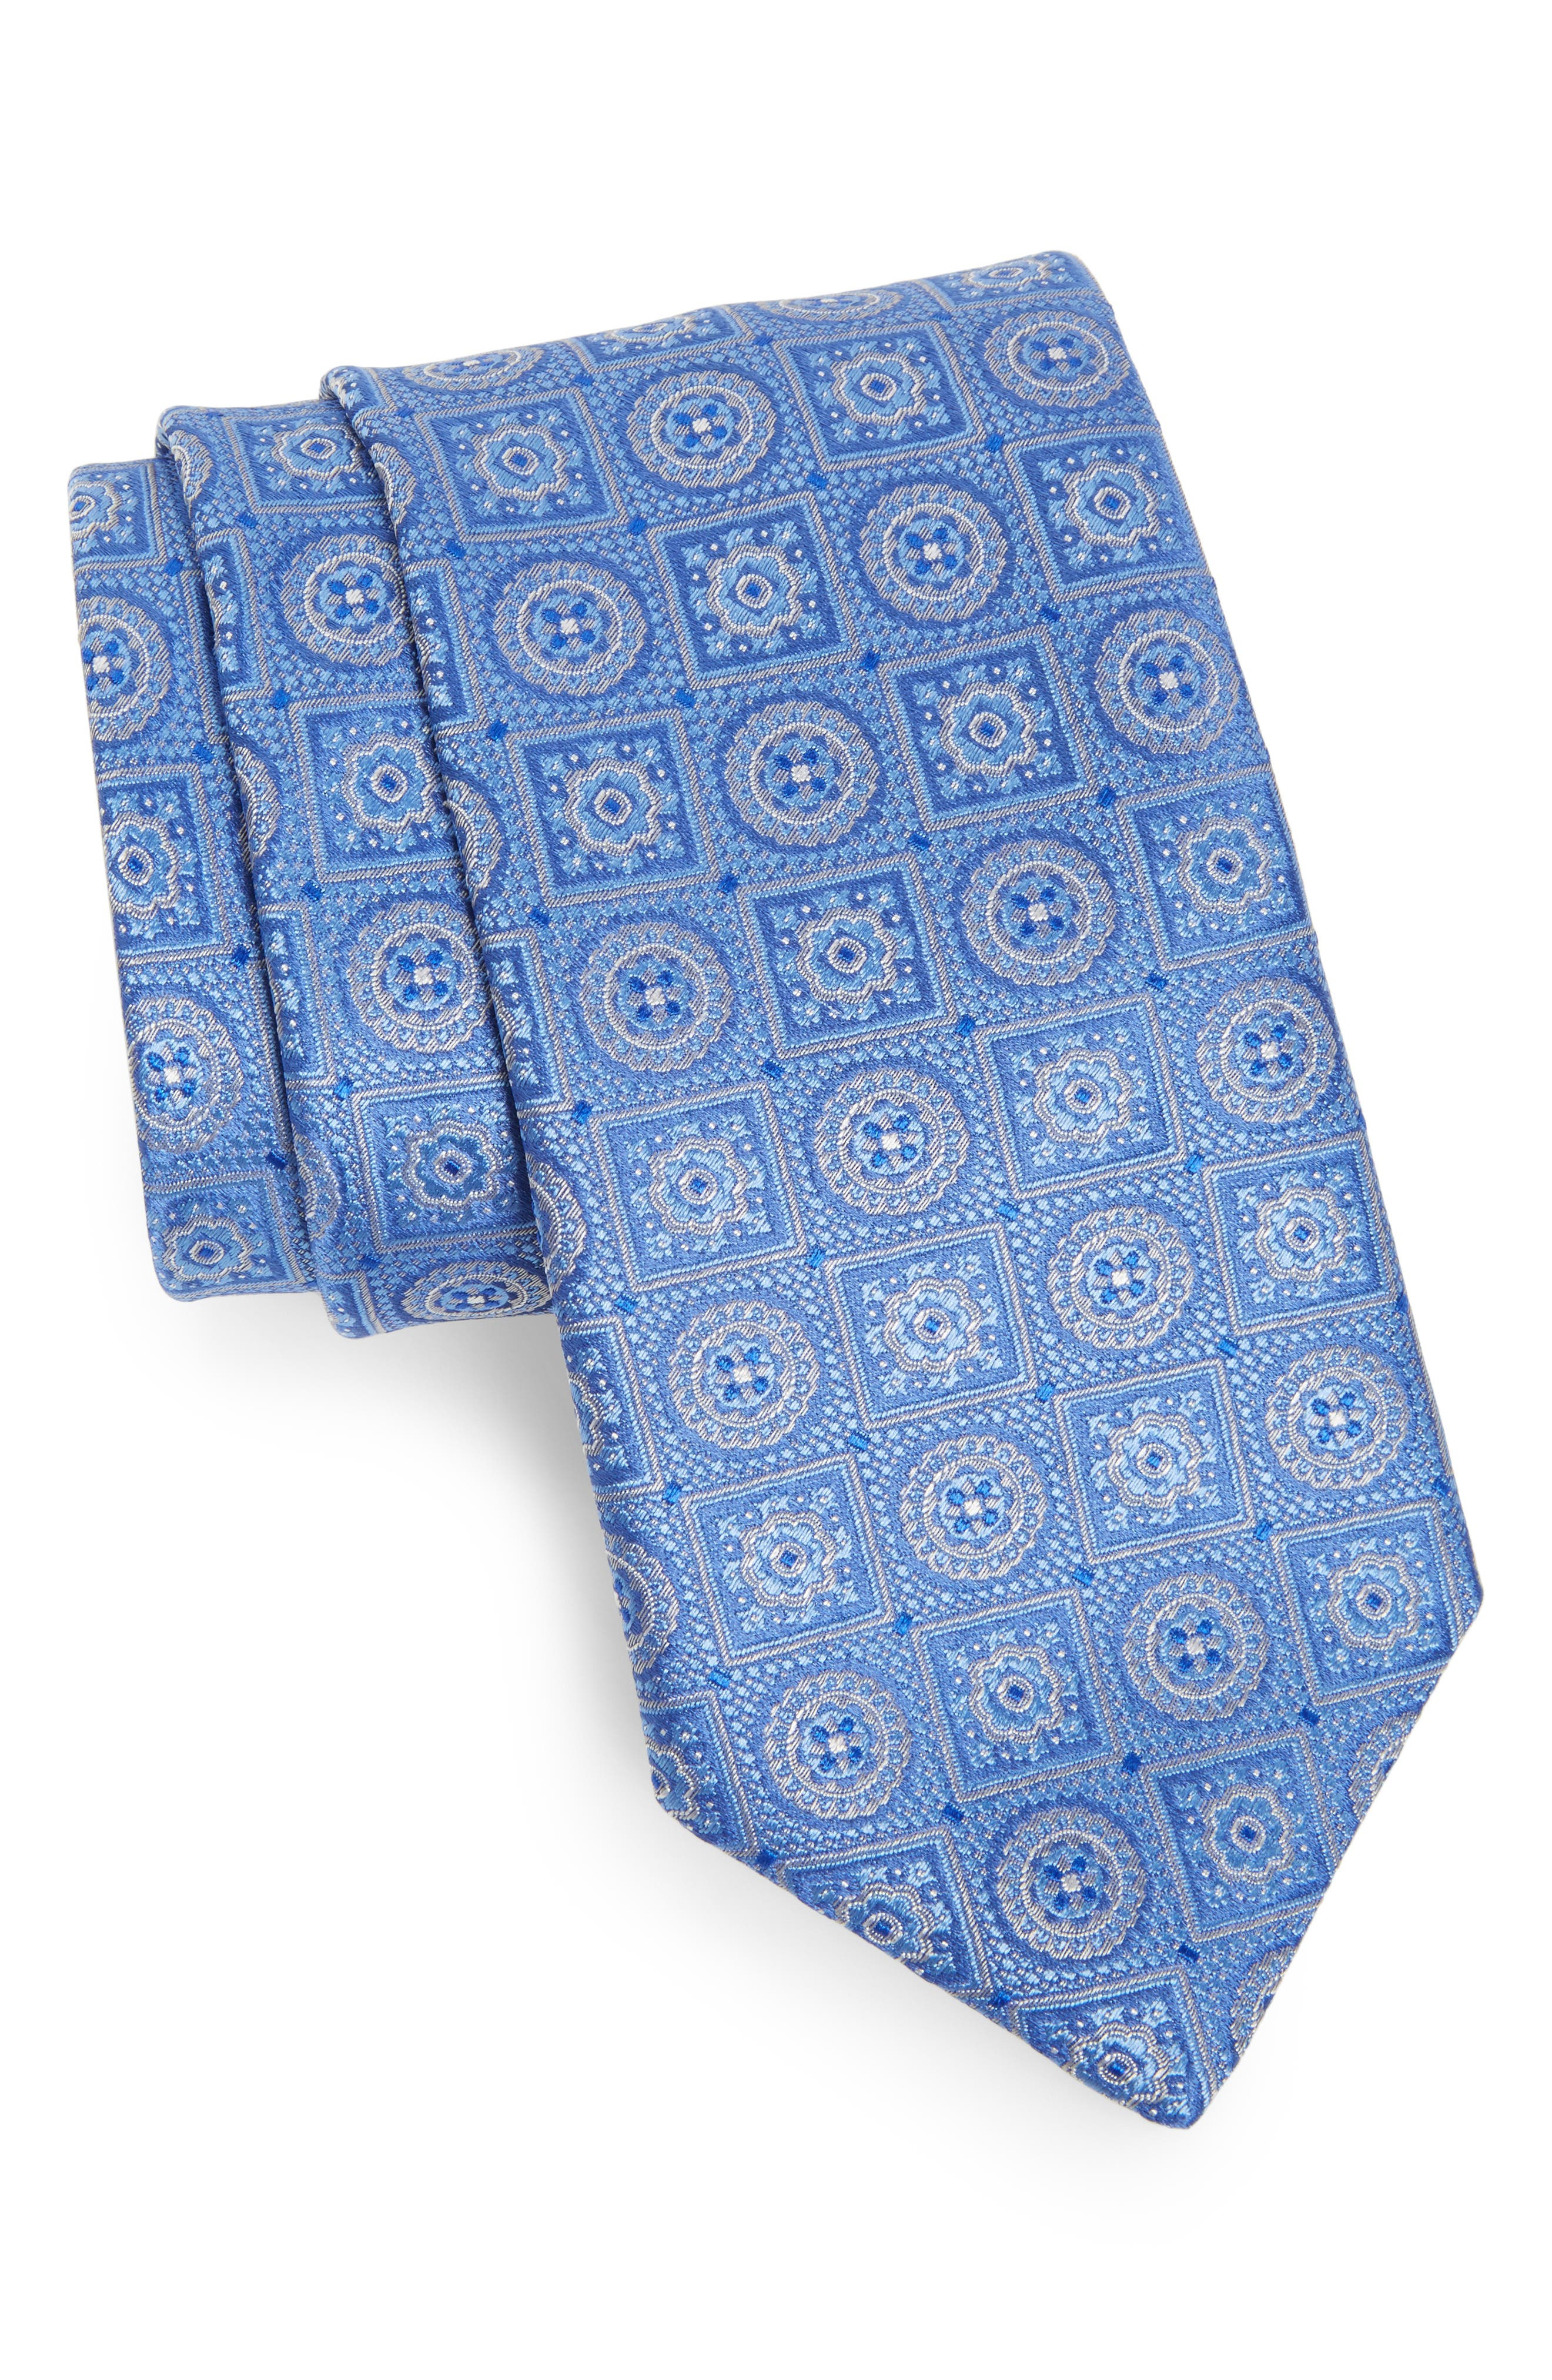 Medallion Silk Tie,                         Main,                         color, Medium Blue